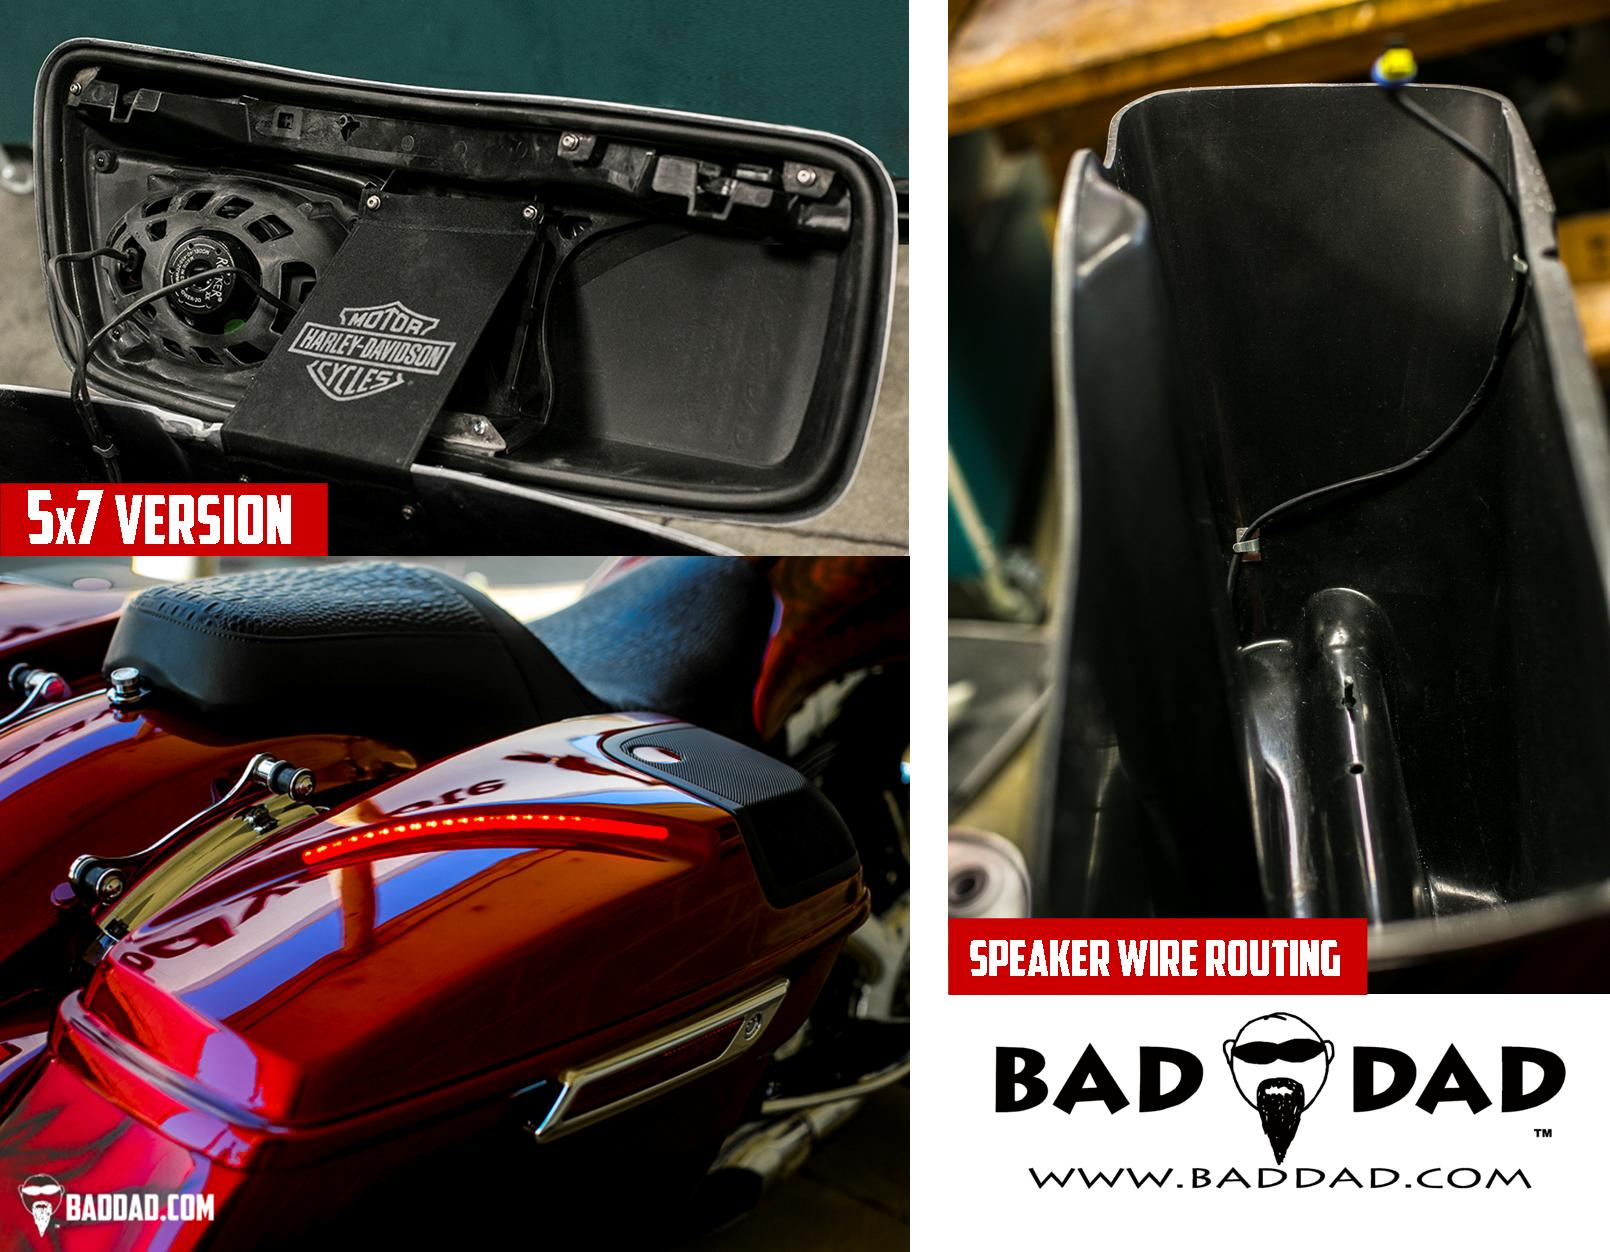 2014+ speaker lids with 5x7 speaker | bad dad | custom ... 2014 harley saddlebag speaker wiring diagram